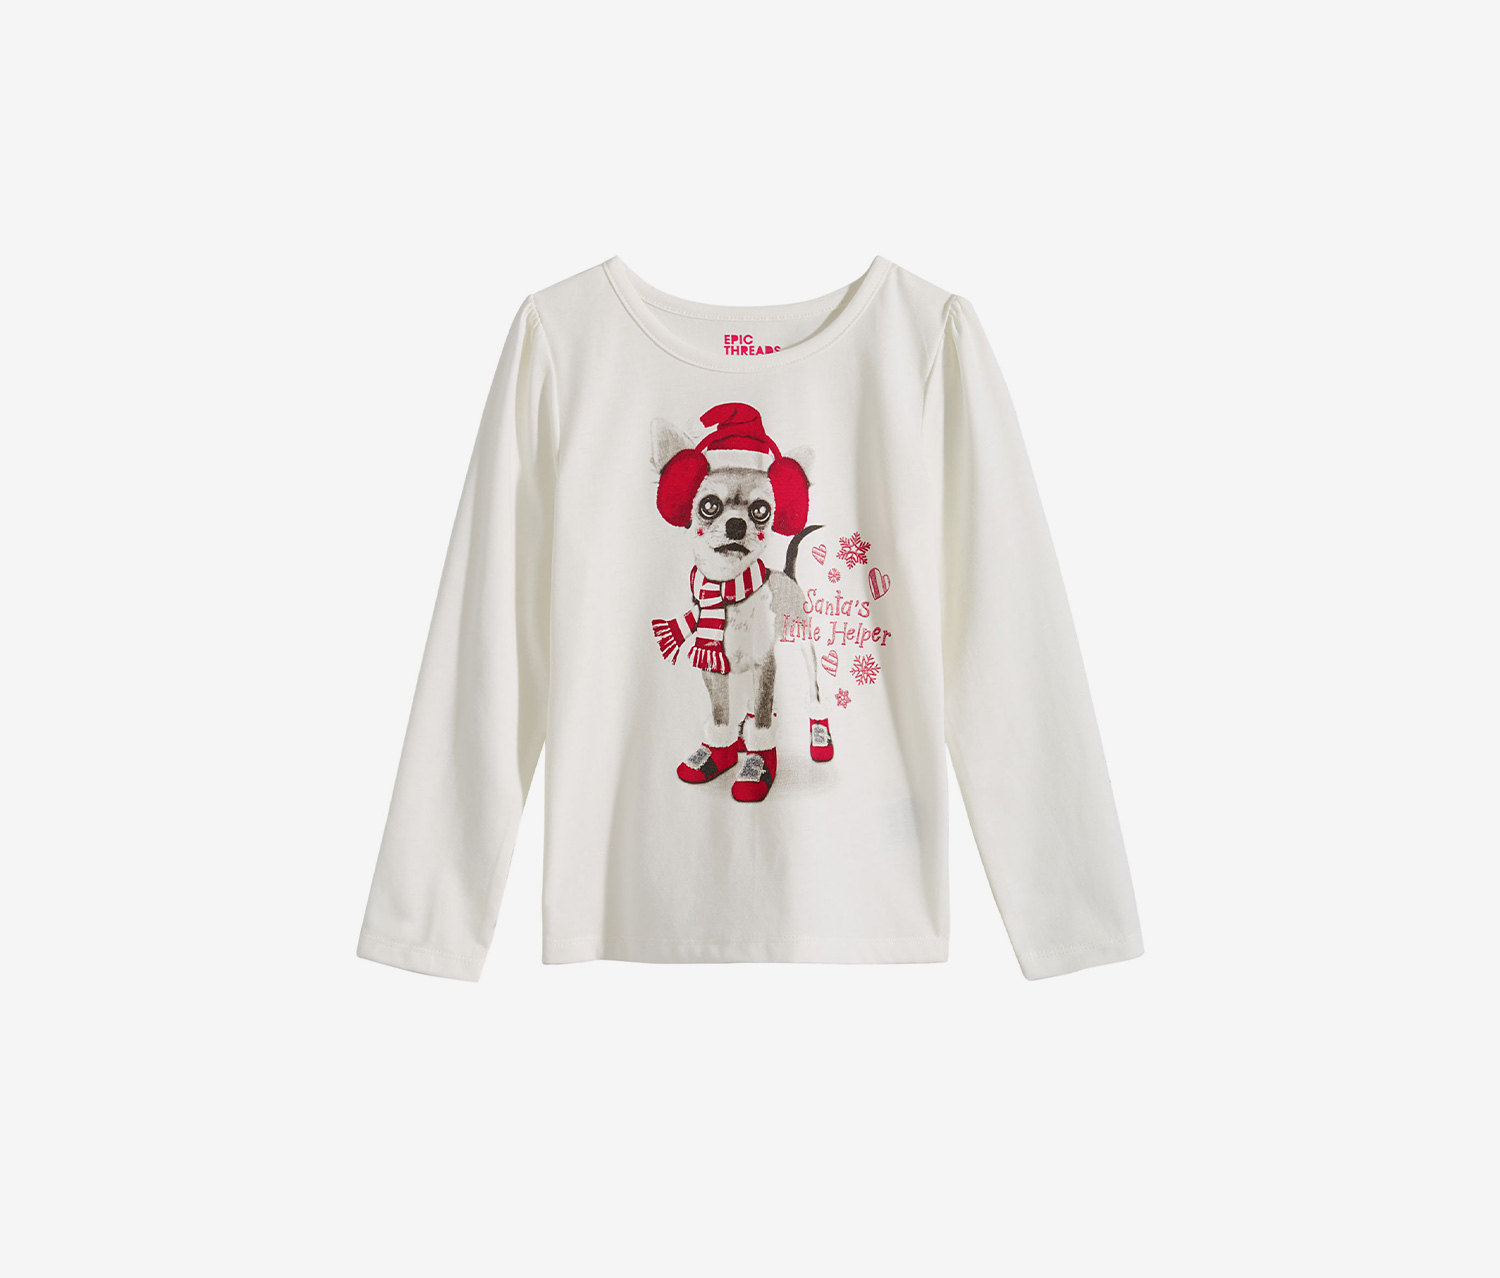 Toddlers Graphic Tee, Holiday Ivory